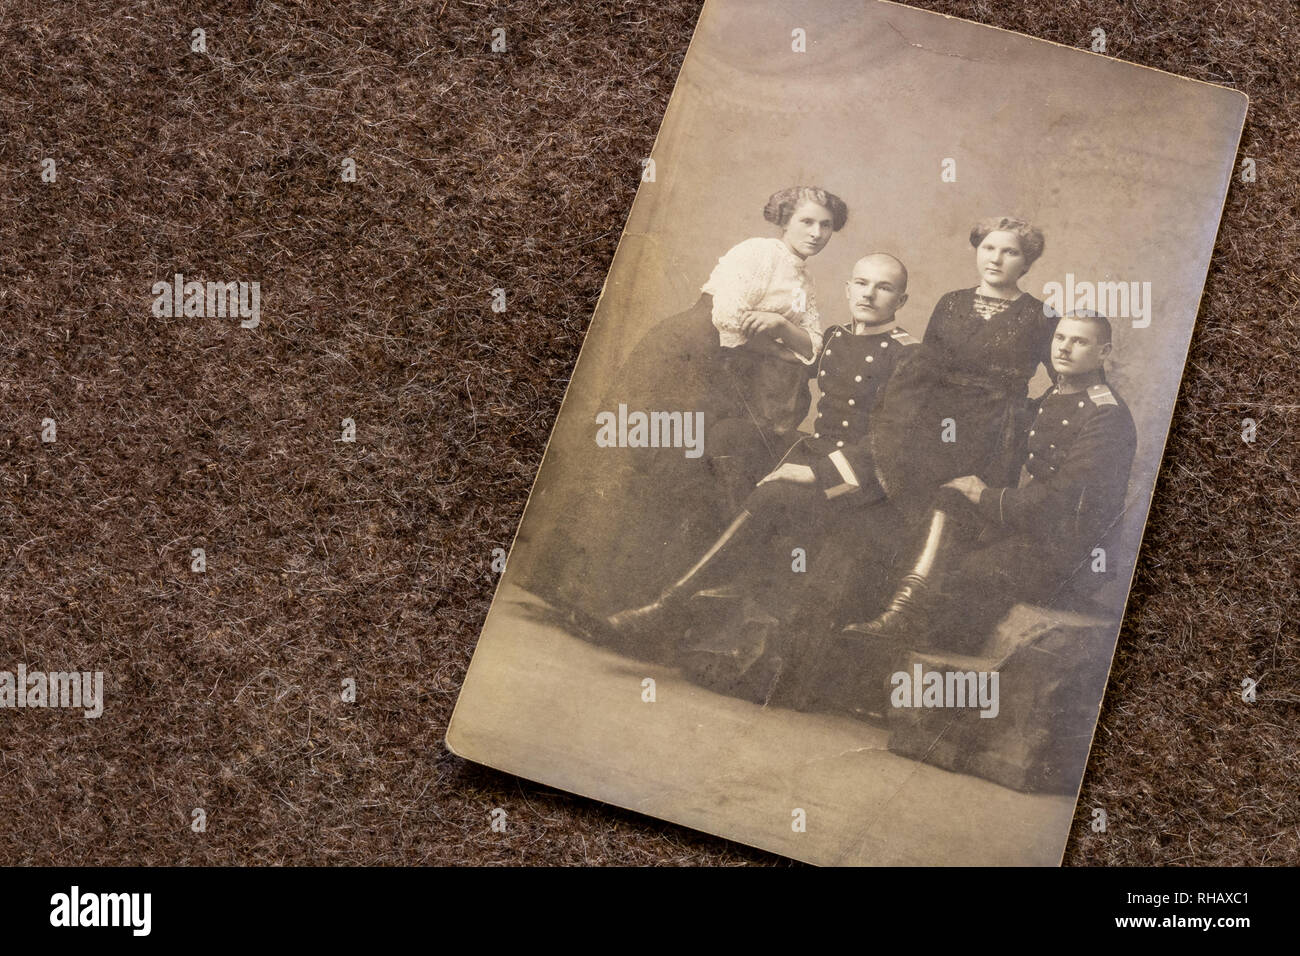 Portrait of officers and their girlfriends in period of World War I on trench coat background - Stock Image